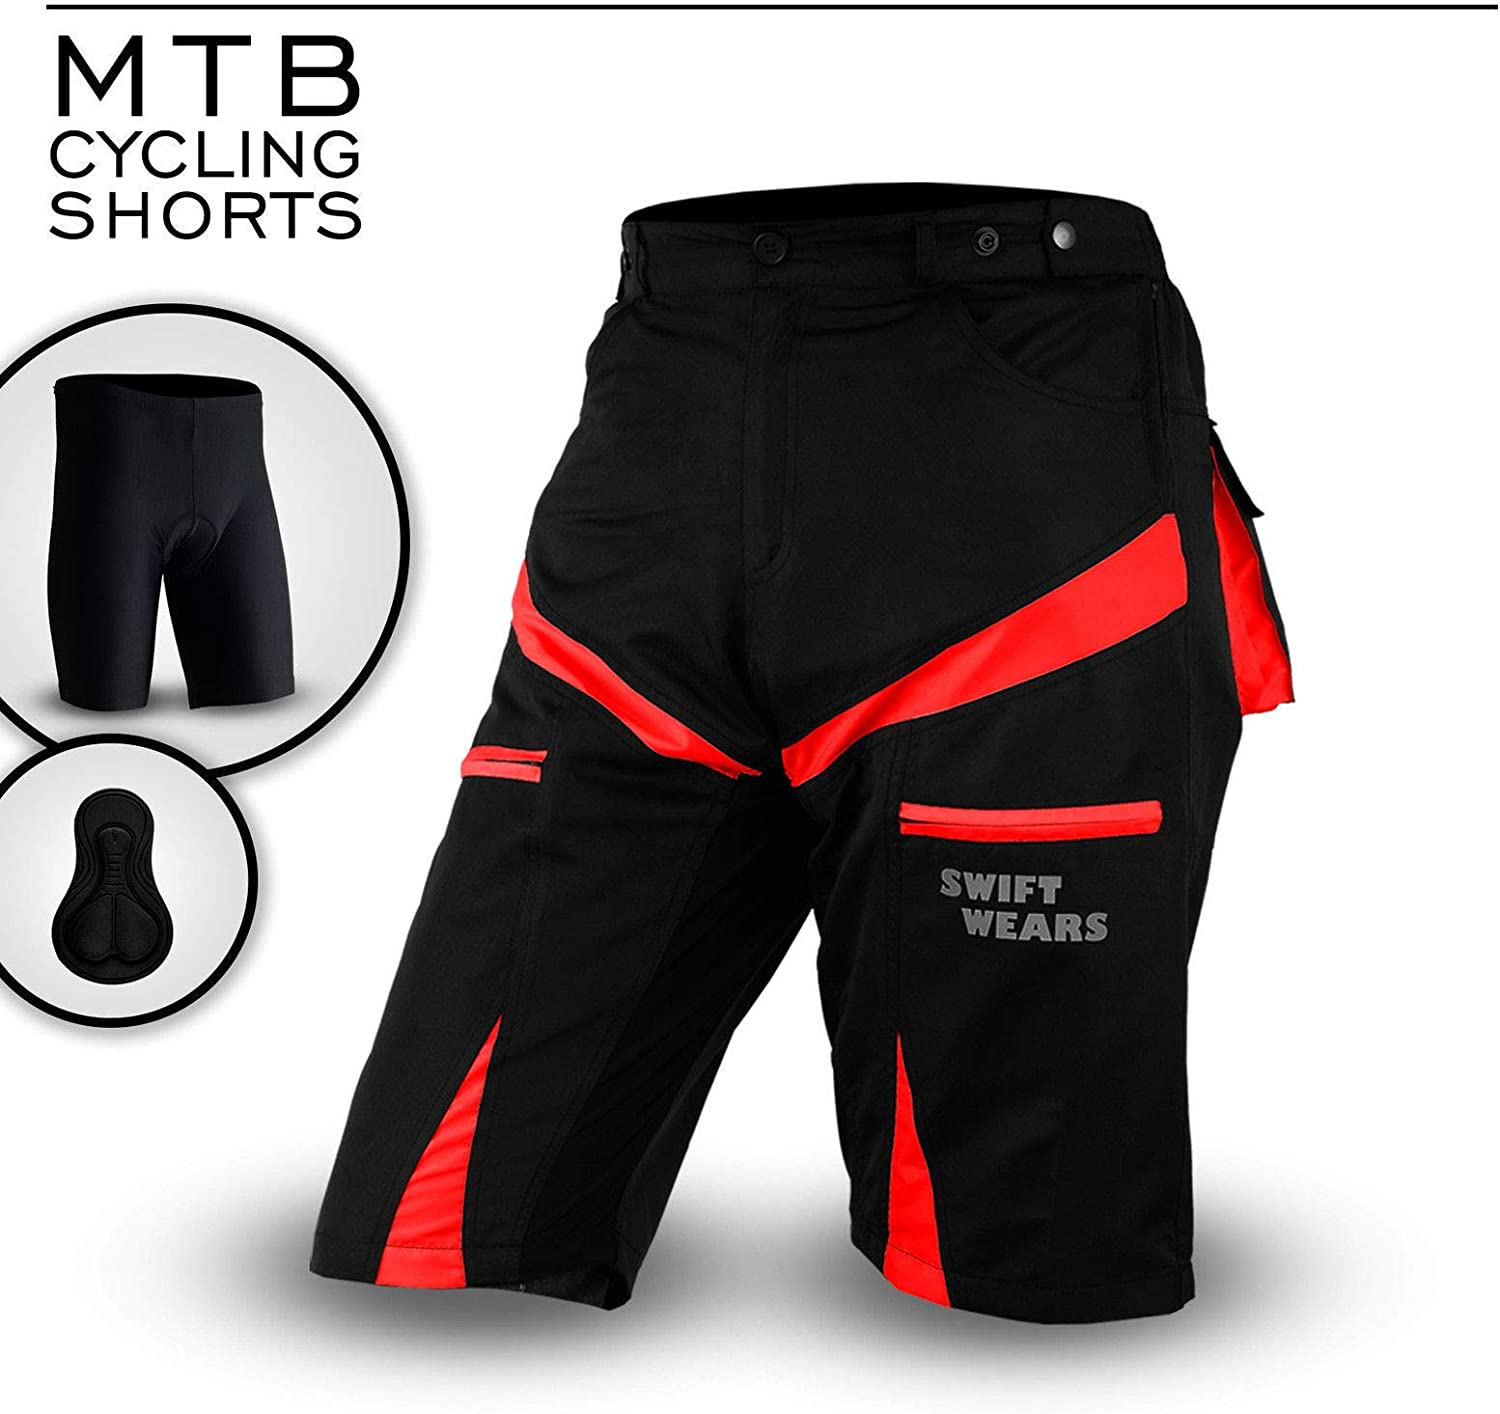 SwiftWears MTB Cycling Shorts Cycle Mountain Bike Off Road CoolMax Padded Inner Lycra Liner